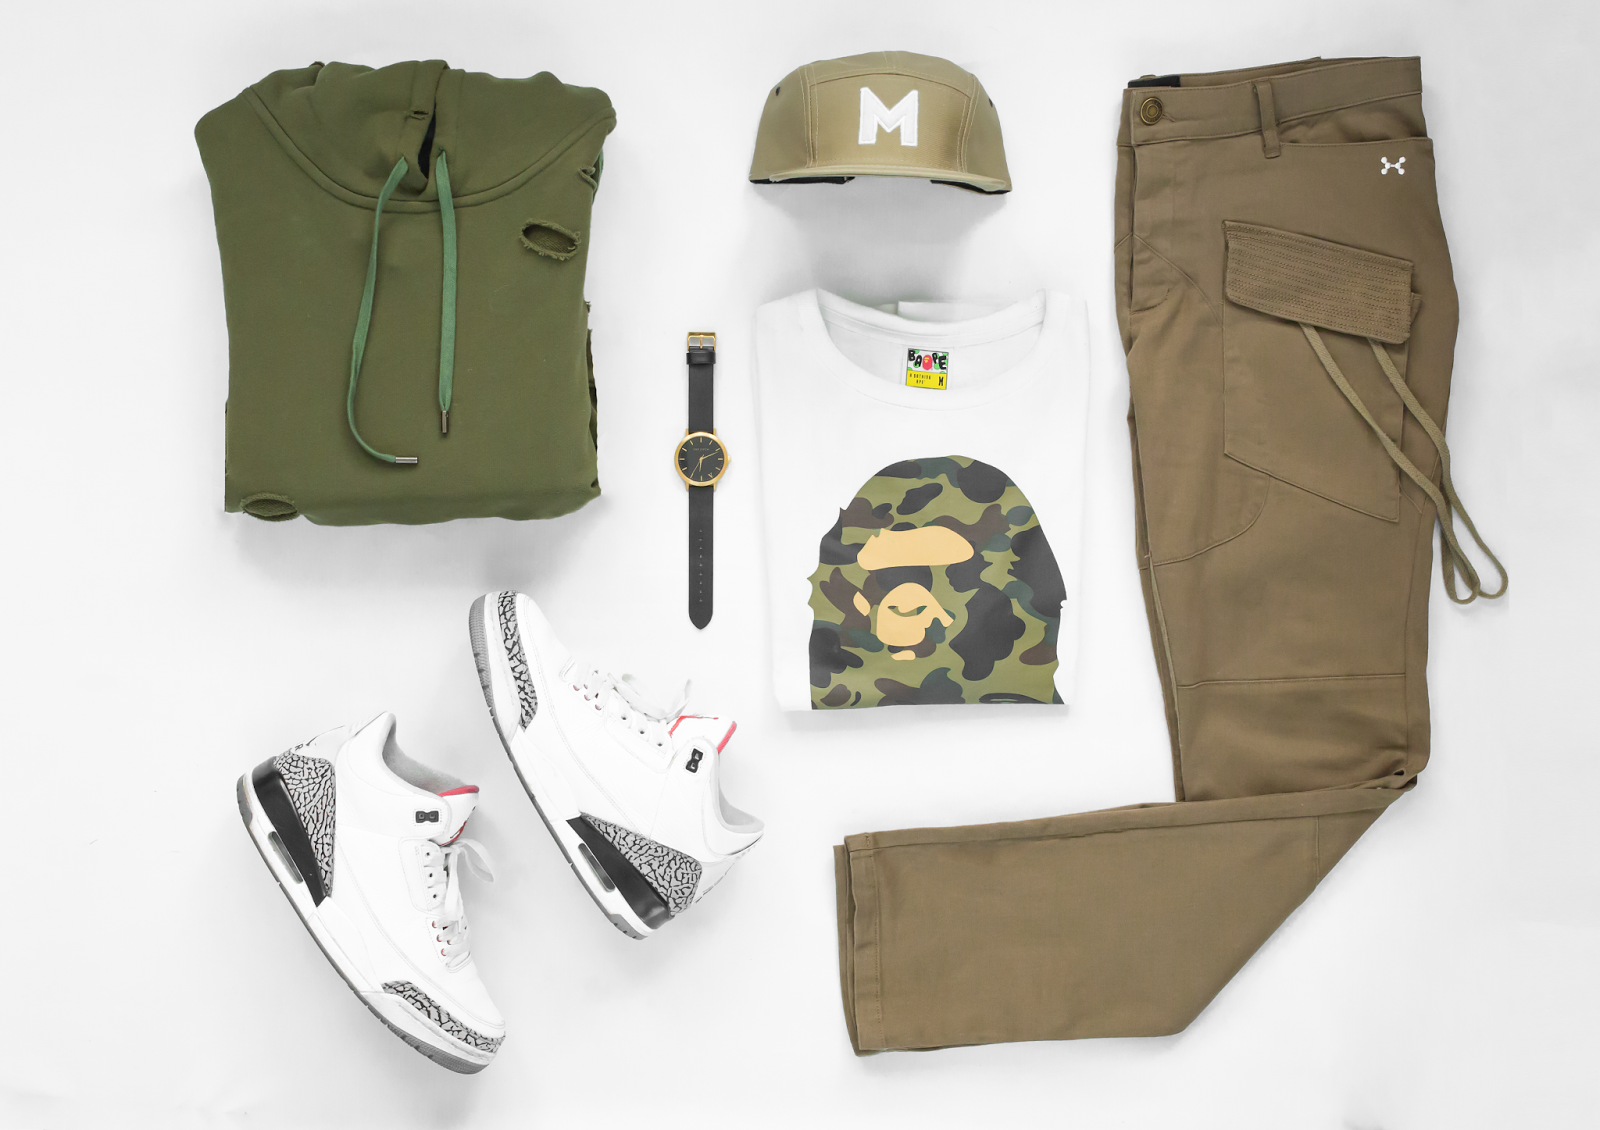 Outfit grid OOTD Challenge Day 5